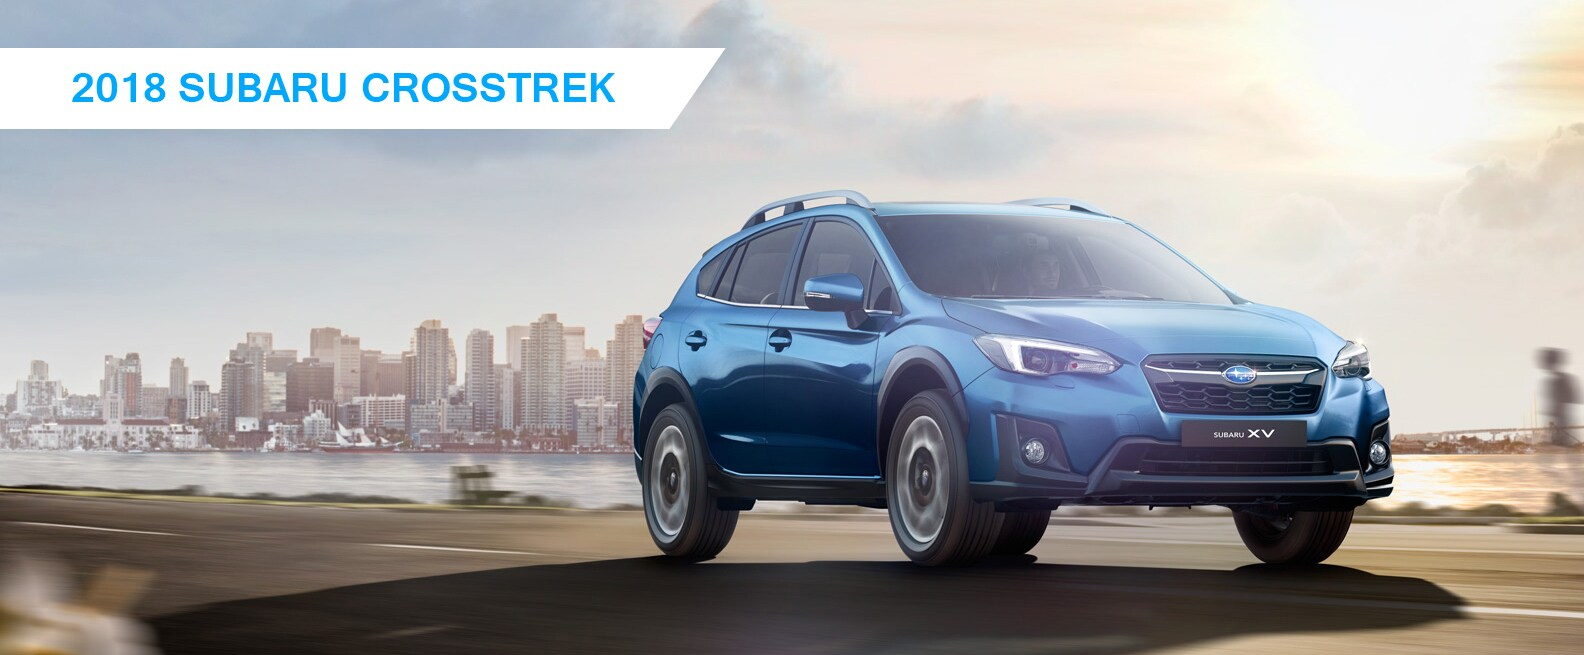 The All New 2018 Subaru Crosstrek Coming Soon To Tulsa